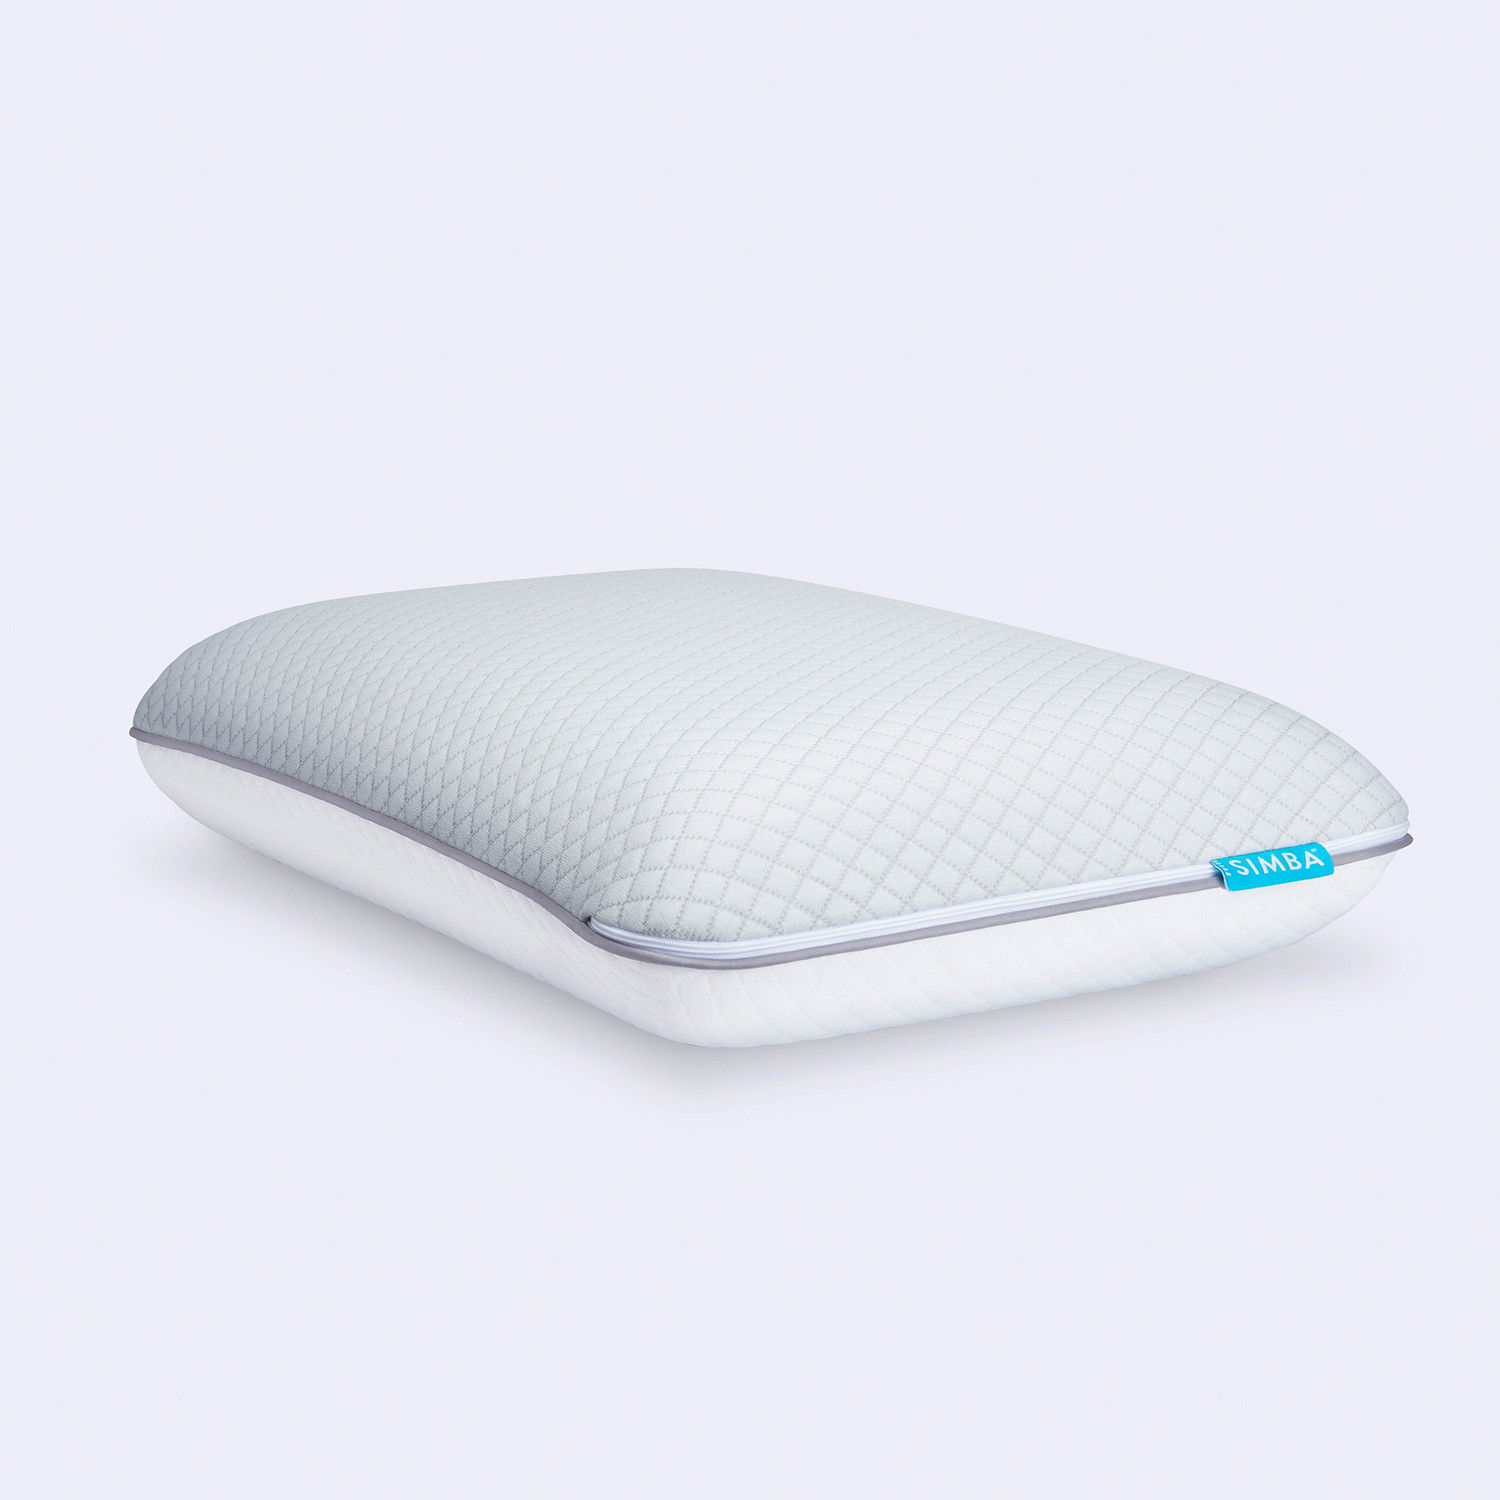 Simba Memory Foam Pillow with Active Cooling